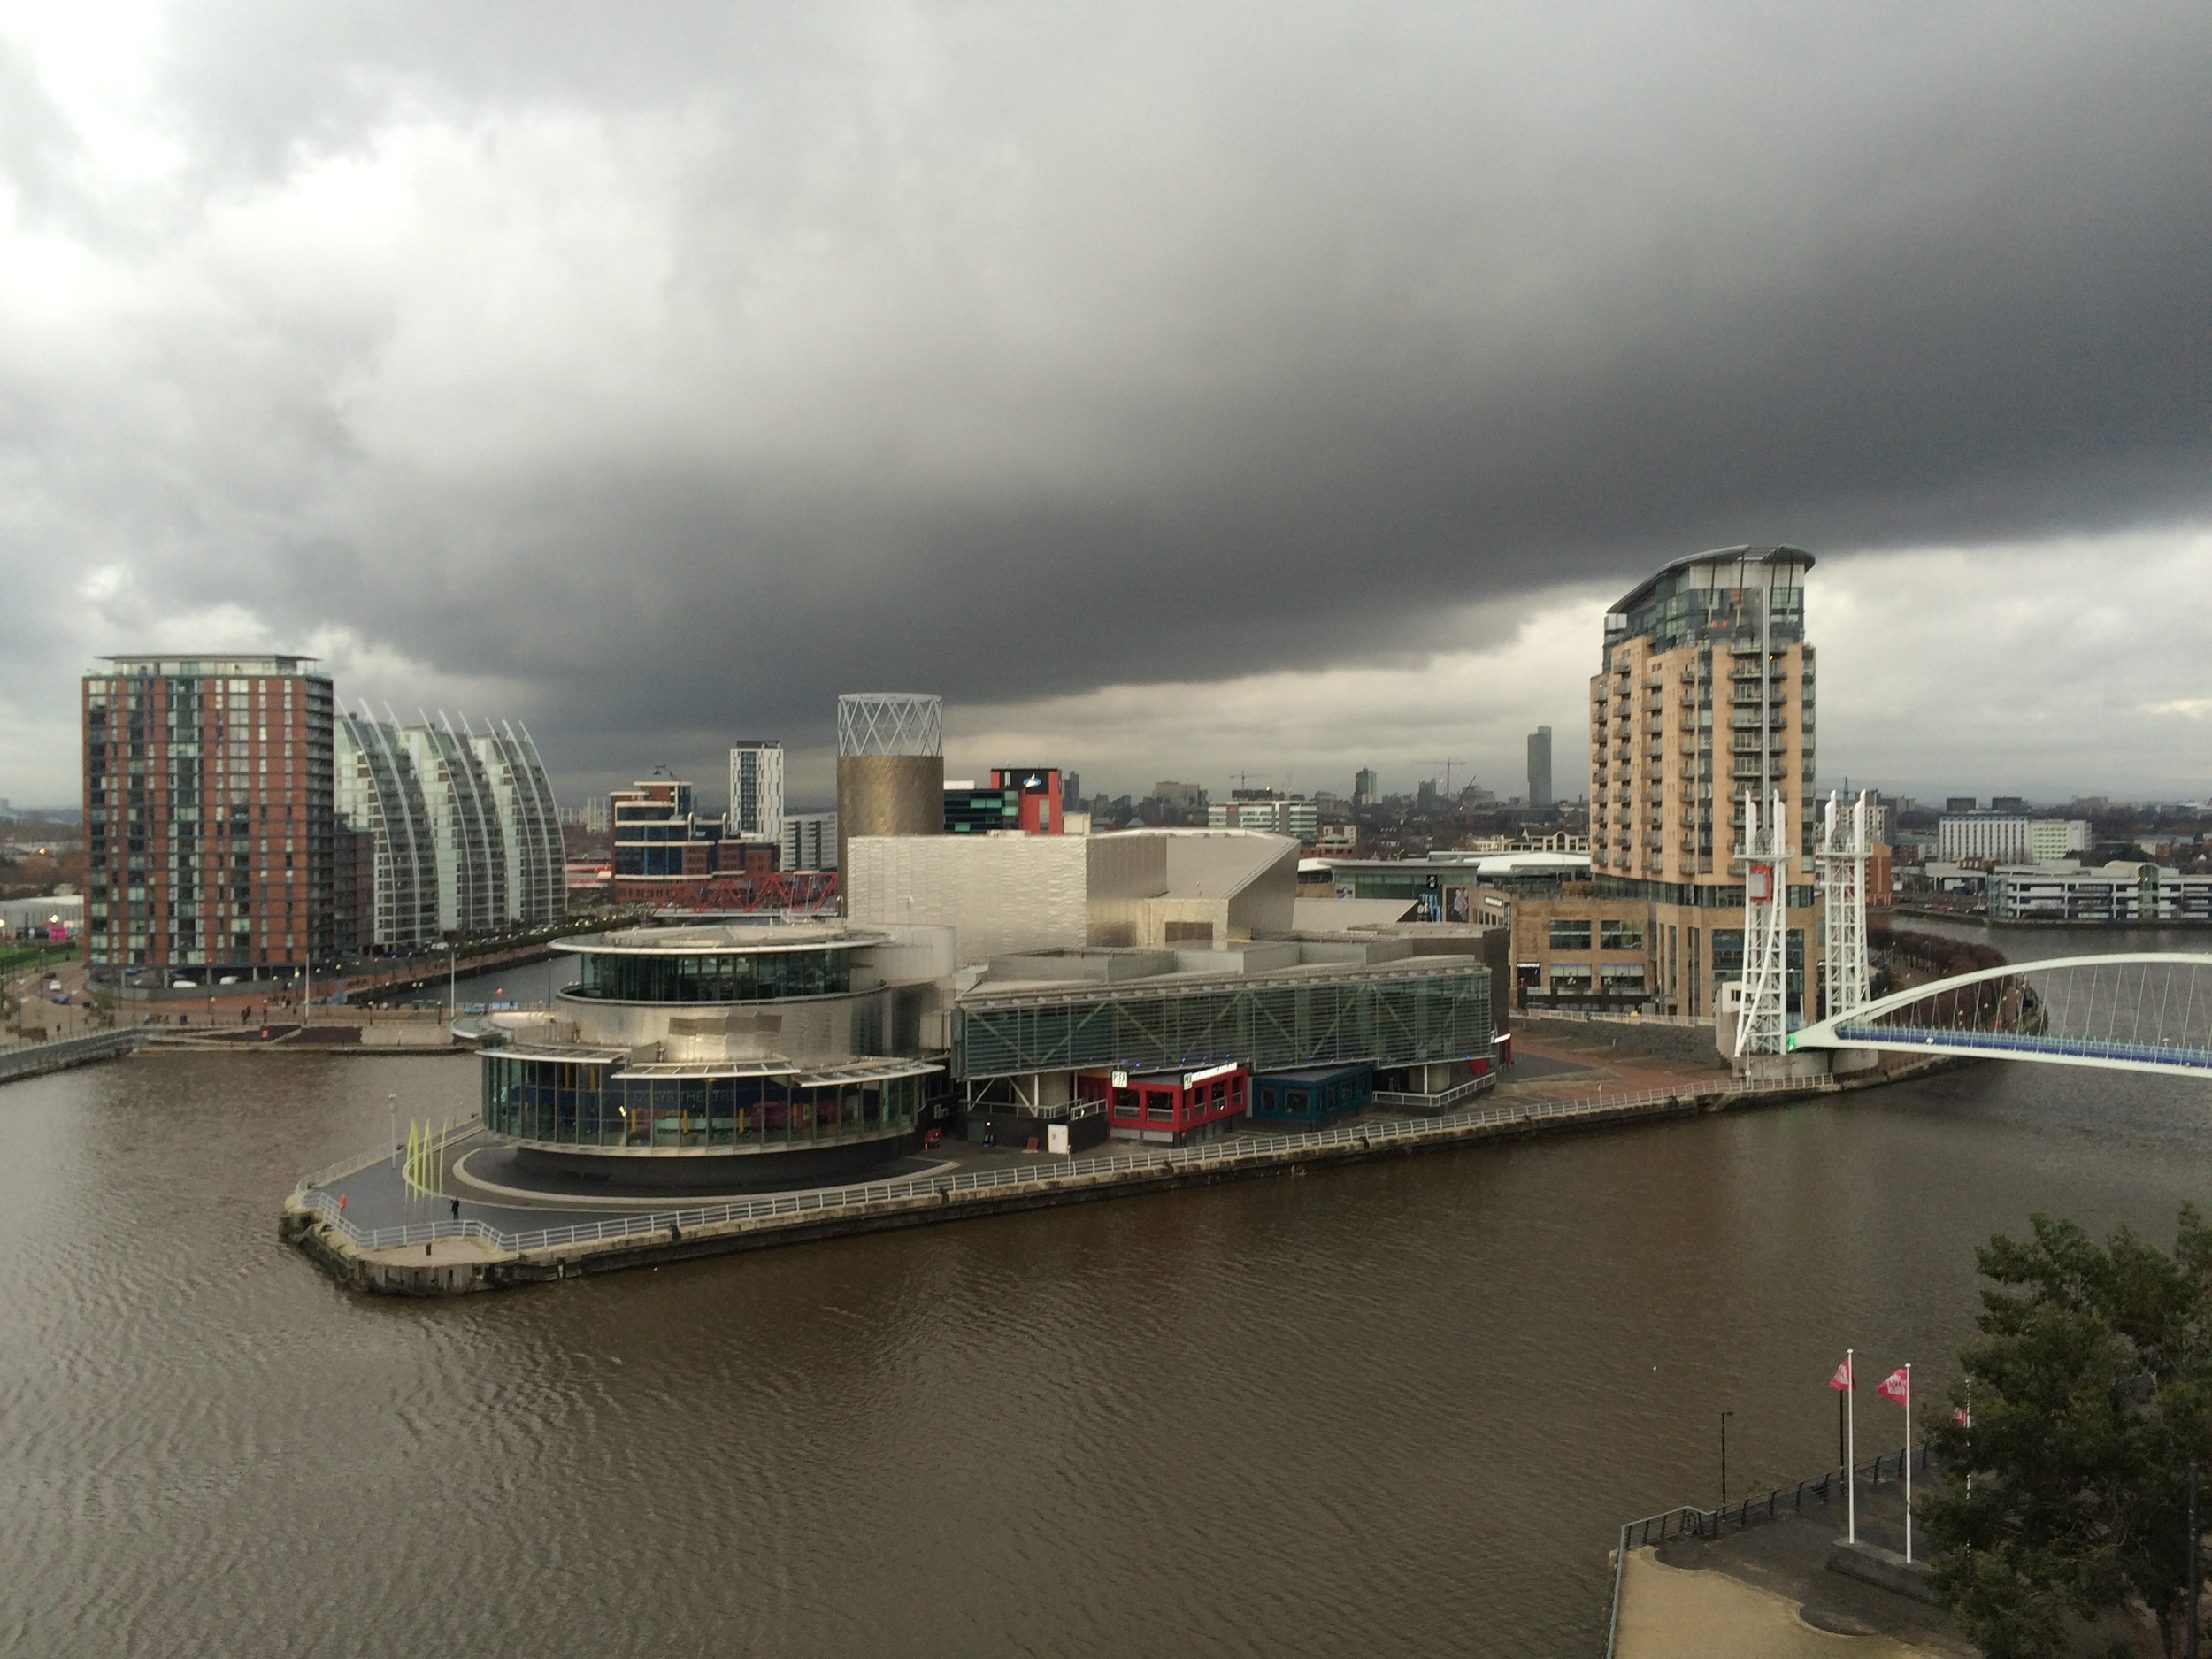 The view from the Imperial War Museum North's shard viewing platform. The Manchester weather is in fine form, as per usual.